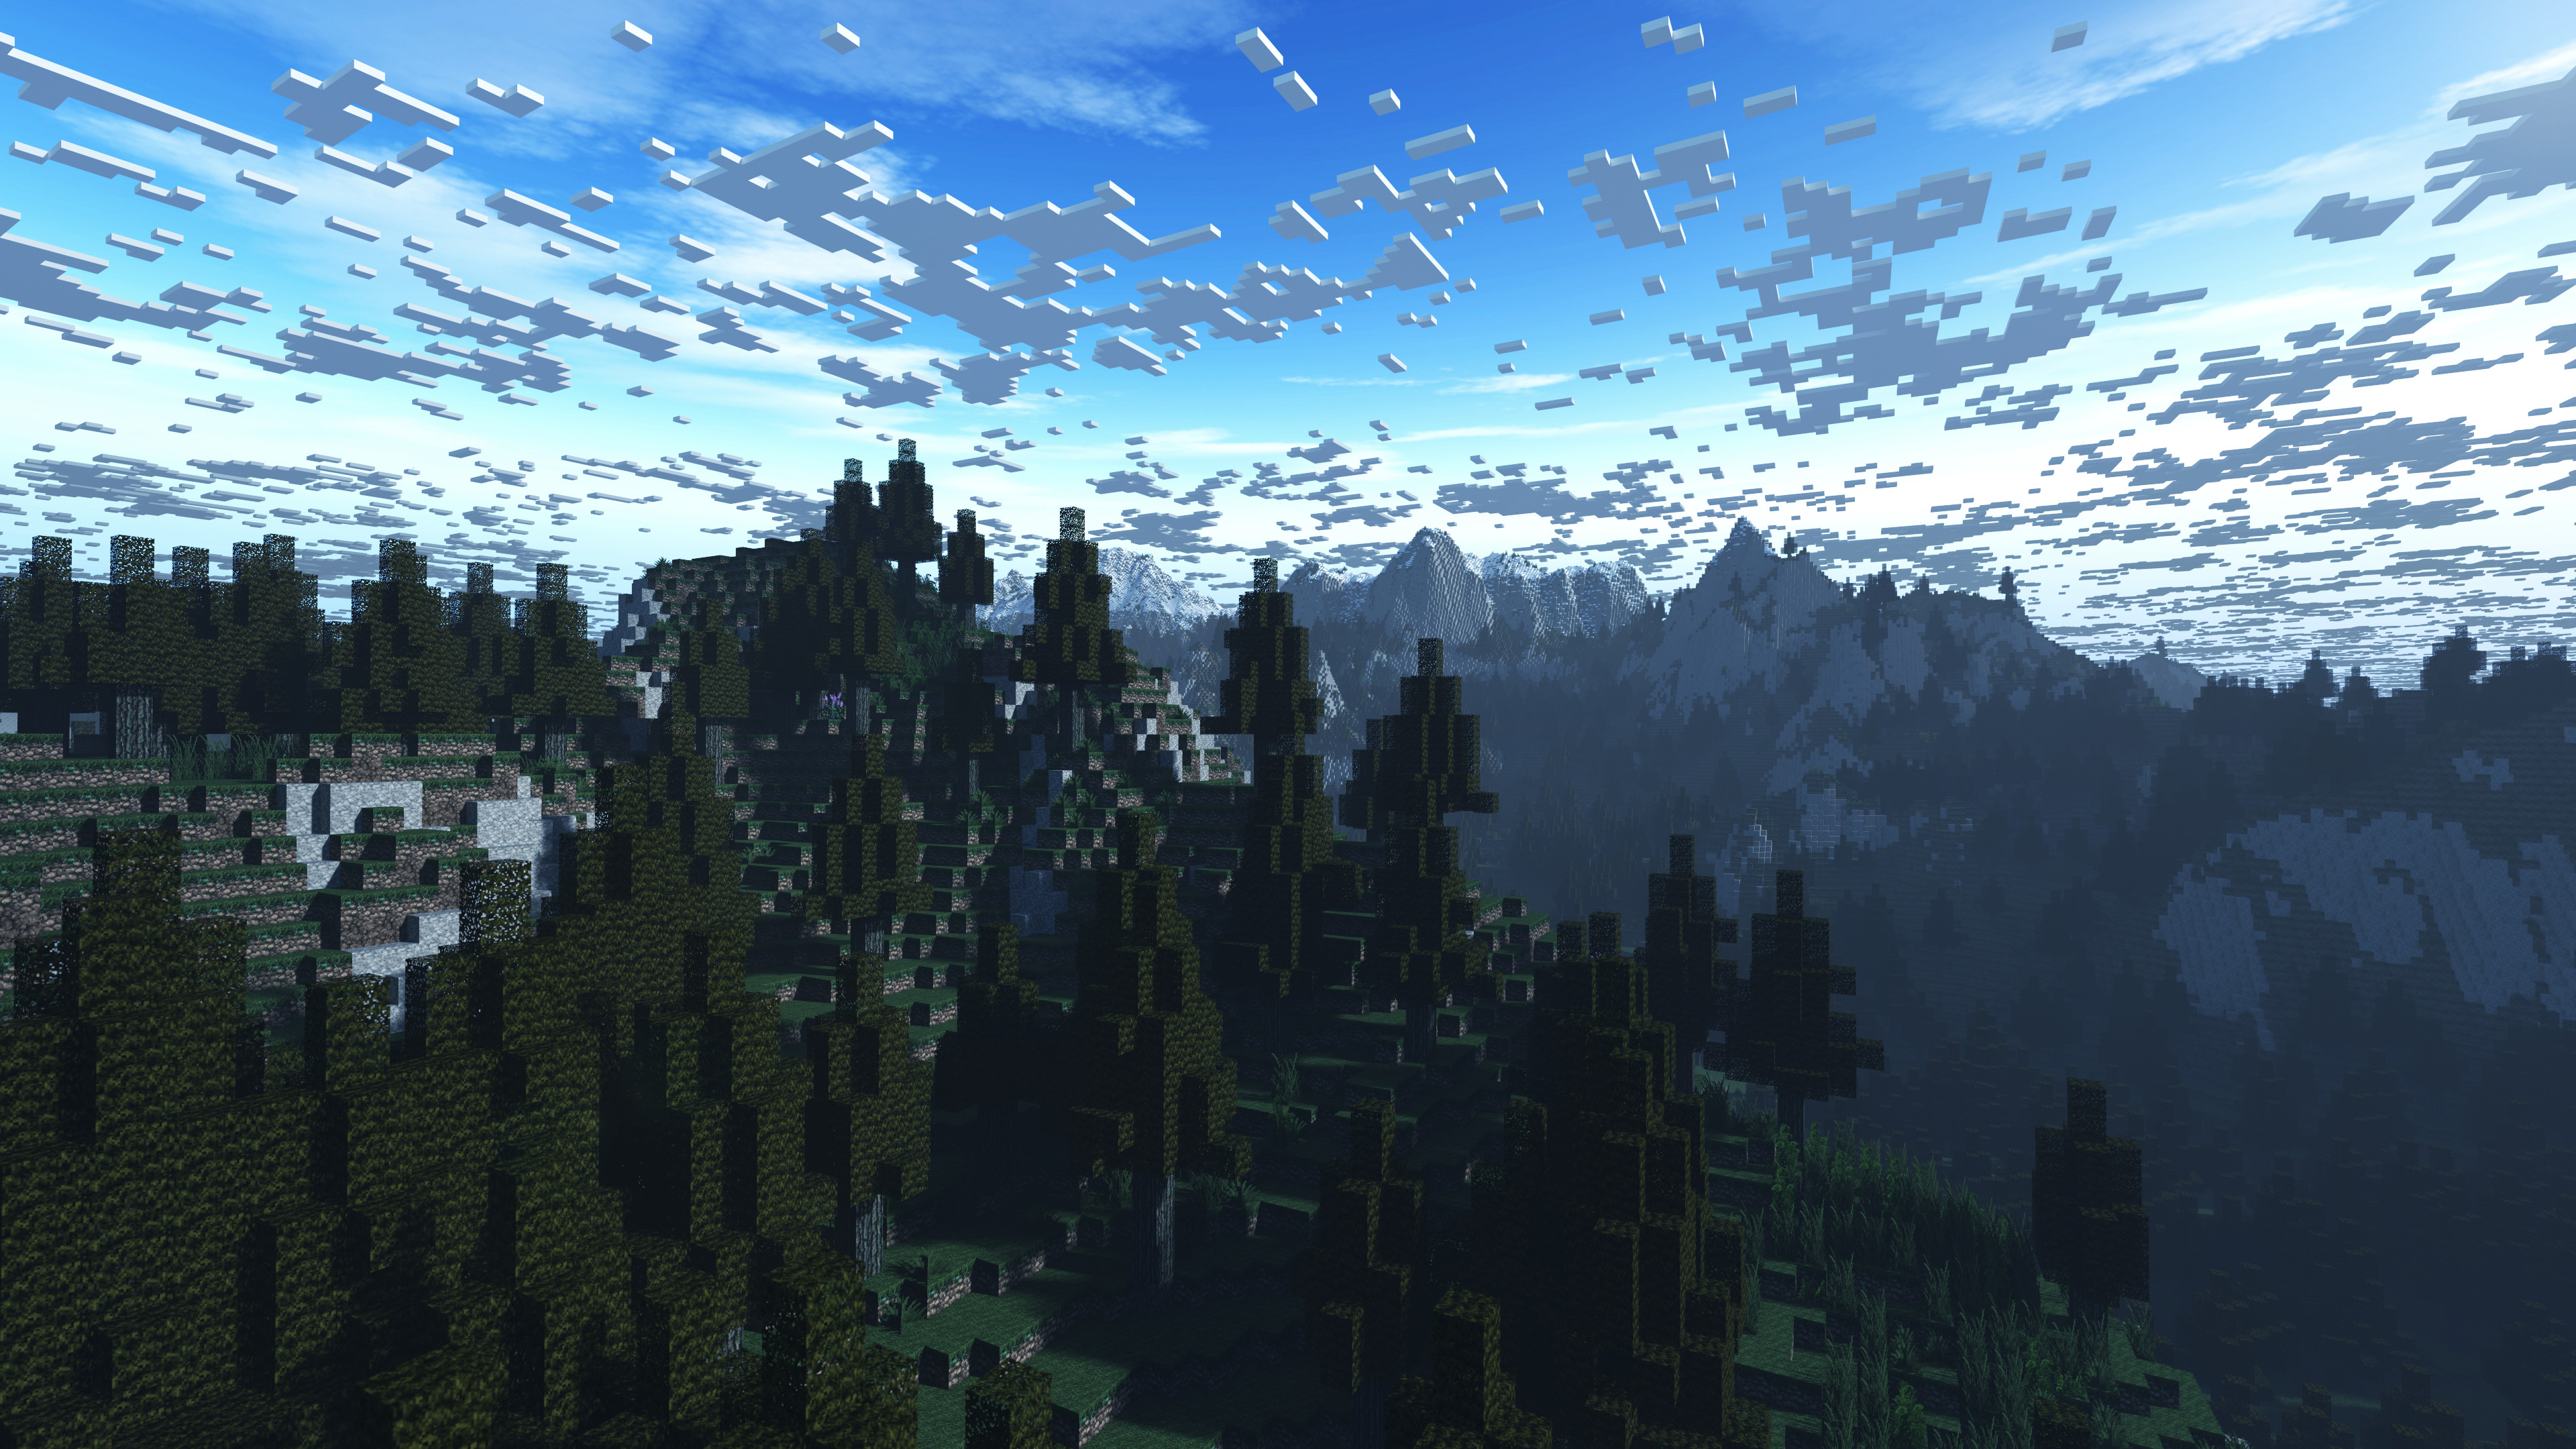 Download Wallpaper Minecraft 1080p - 1115569-minecraft-images-wallpaper-3840x2160-for-1080p  Picture_976765.jpg